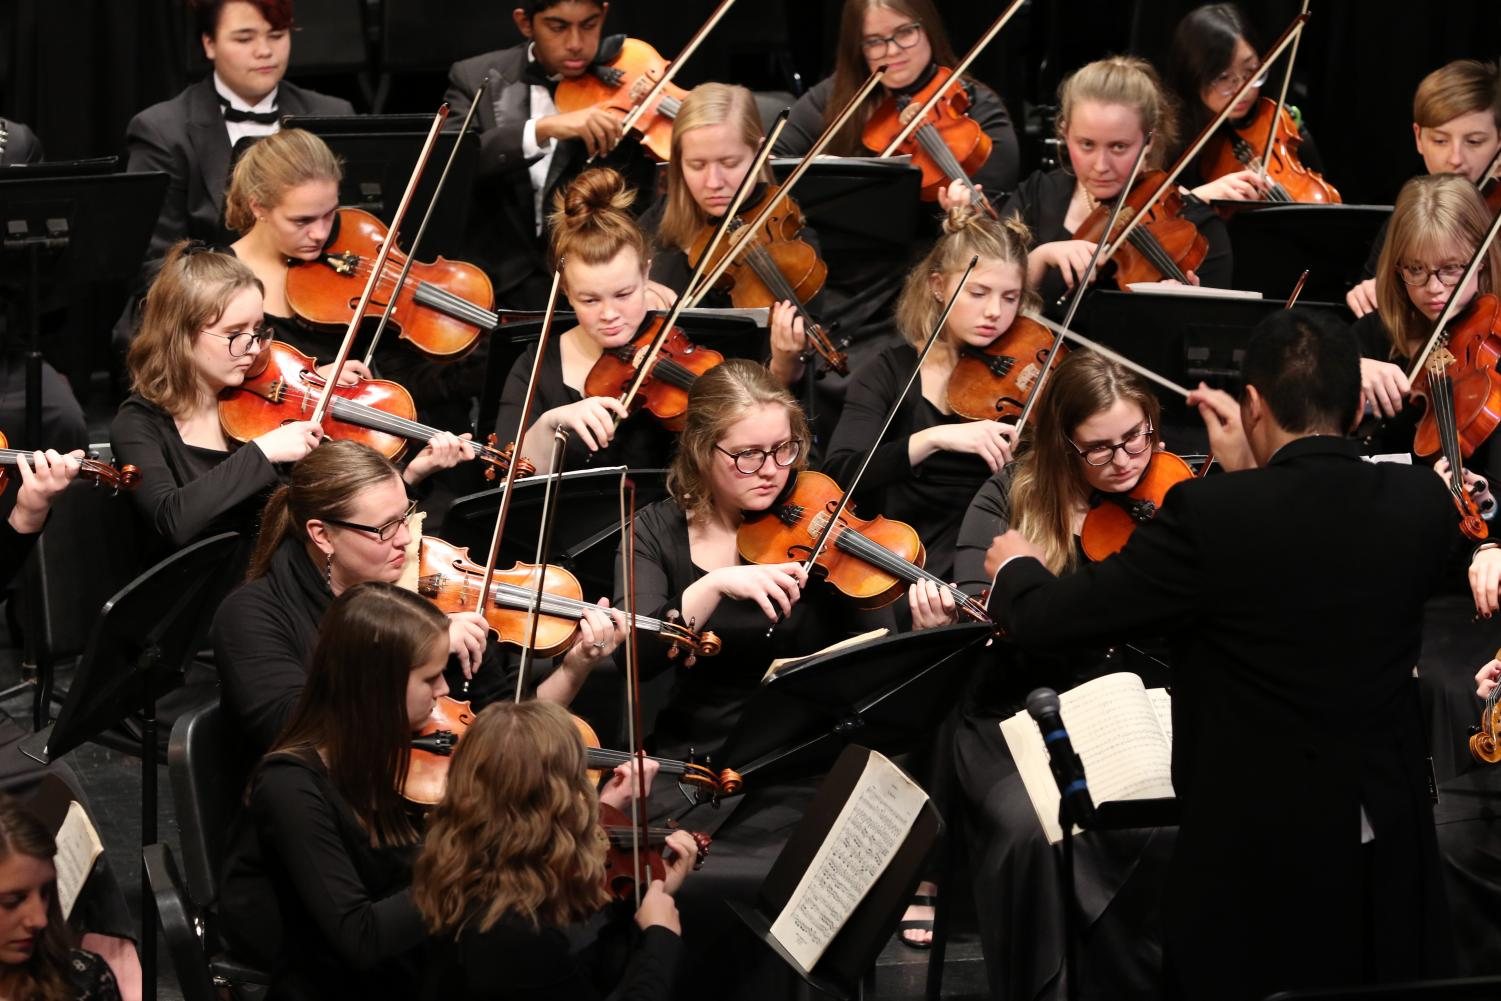 While choir students have been working with the music for months, the orchestra and band students had only been preparing for two weeks